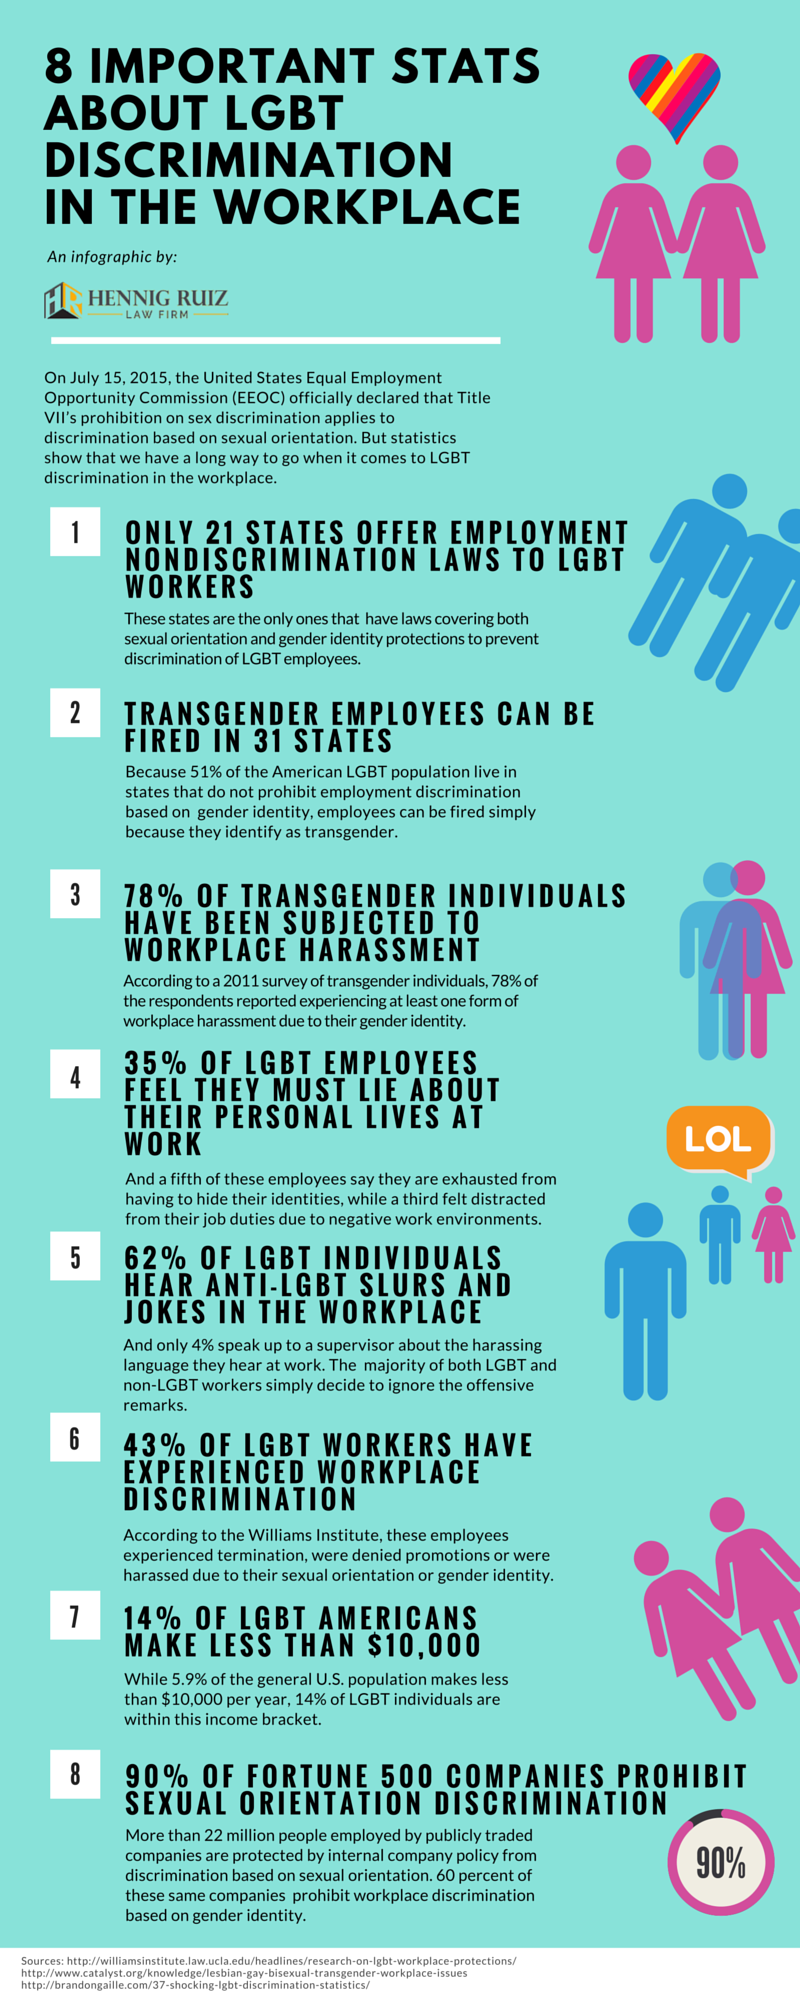 History of sexual orientation discrimination in the workplace